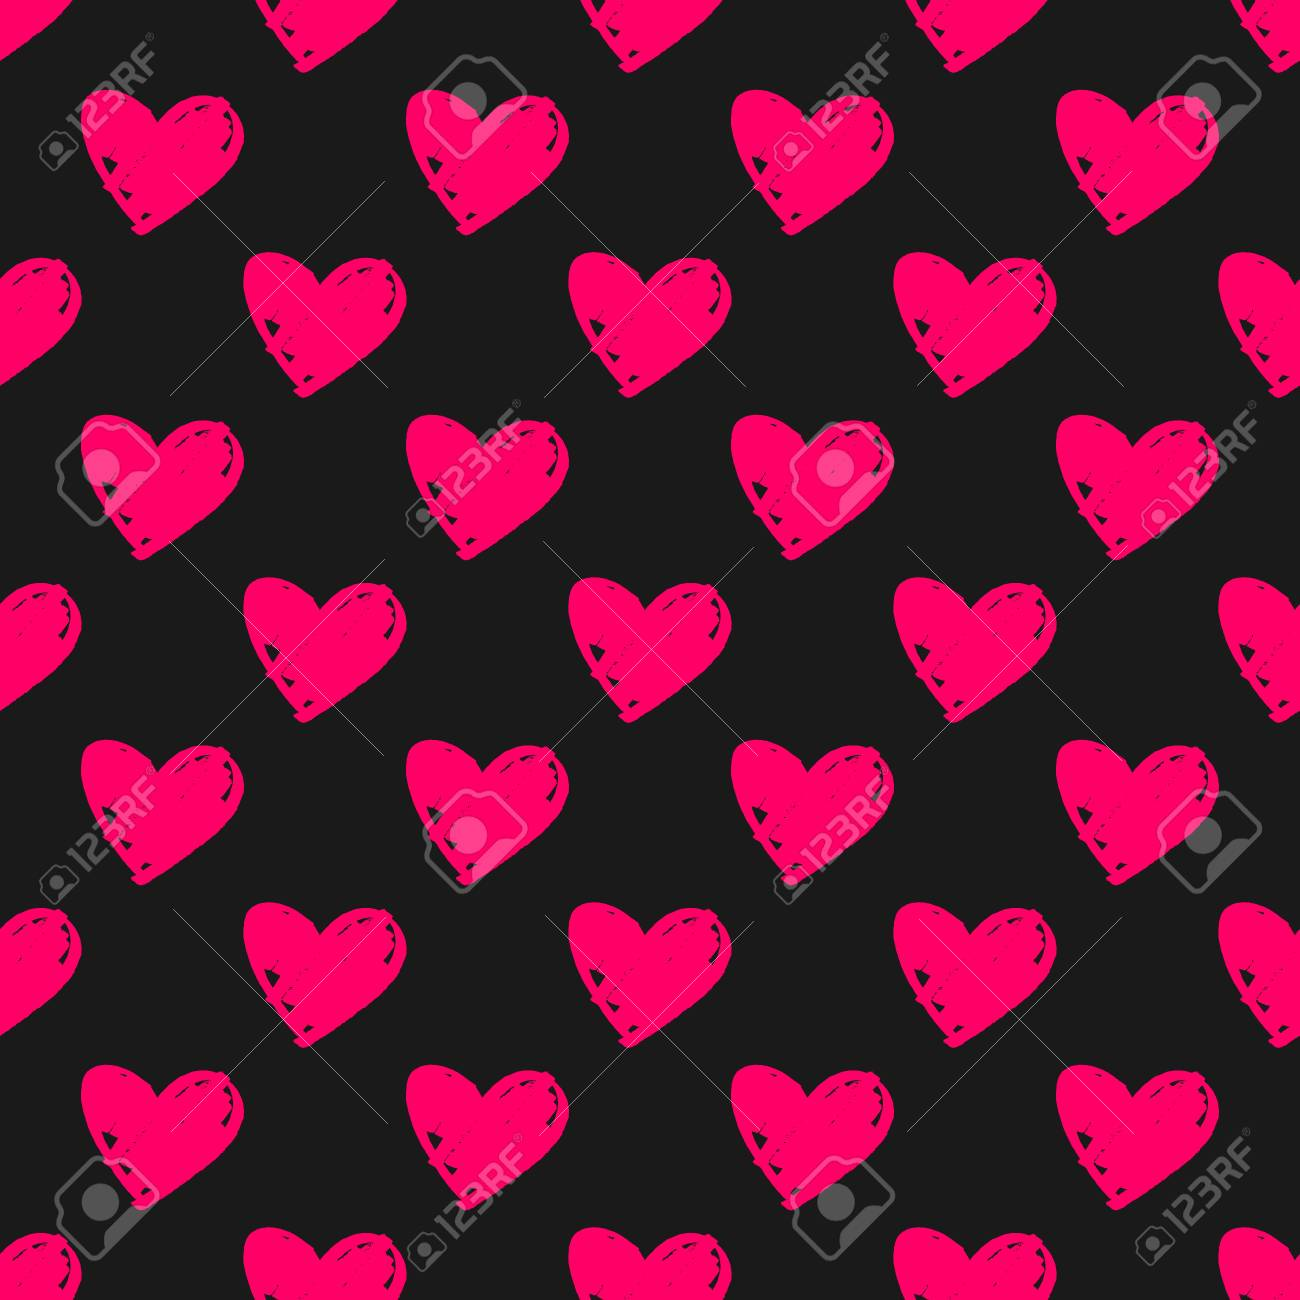 Tile Vector Pattern With Pink Hearts On Black Background For